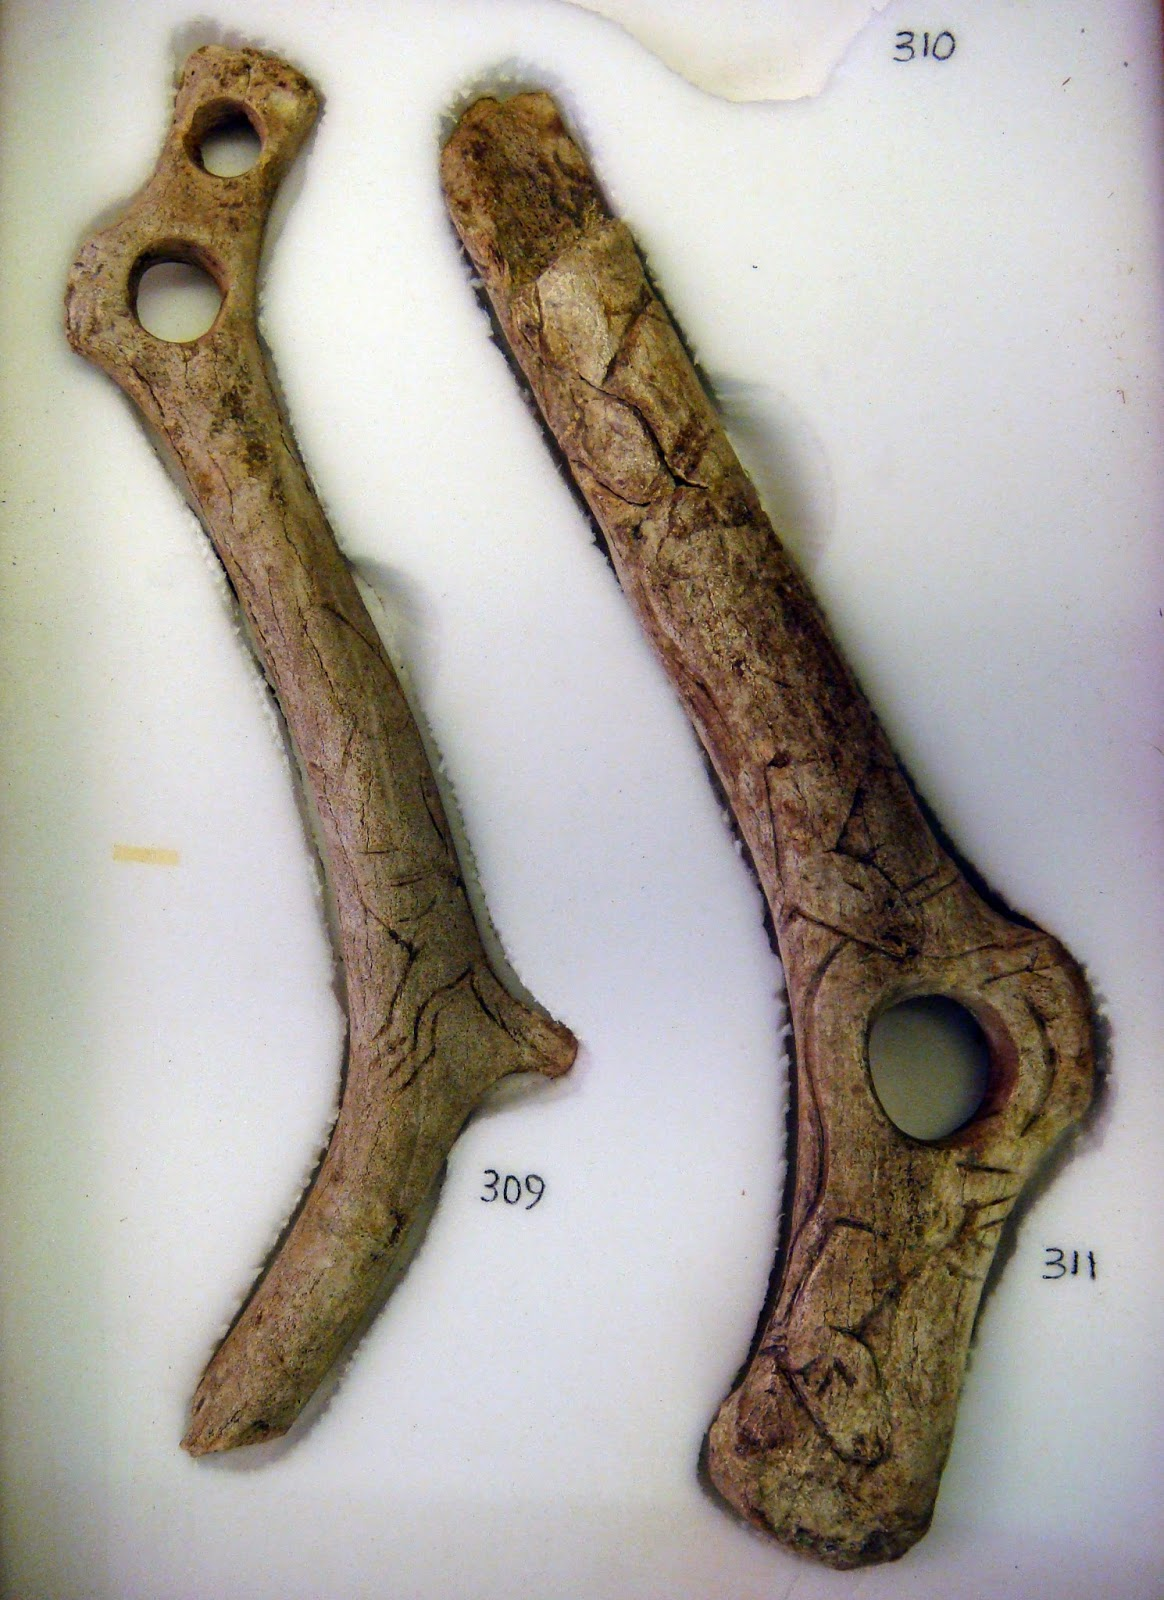 https://commons.wikimedia.org/wiki/File%3AUpper_paleolithic_reindeer_antler_tools_with_figurative_art.jpg